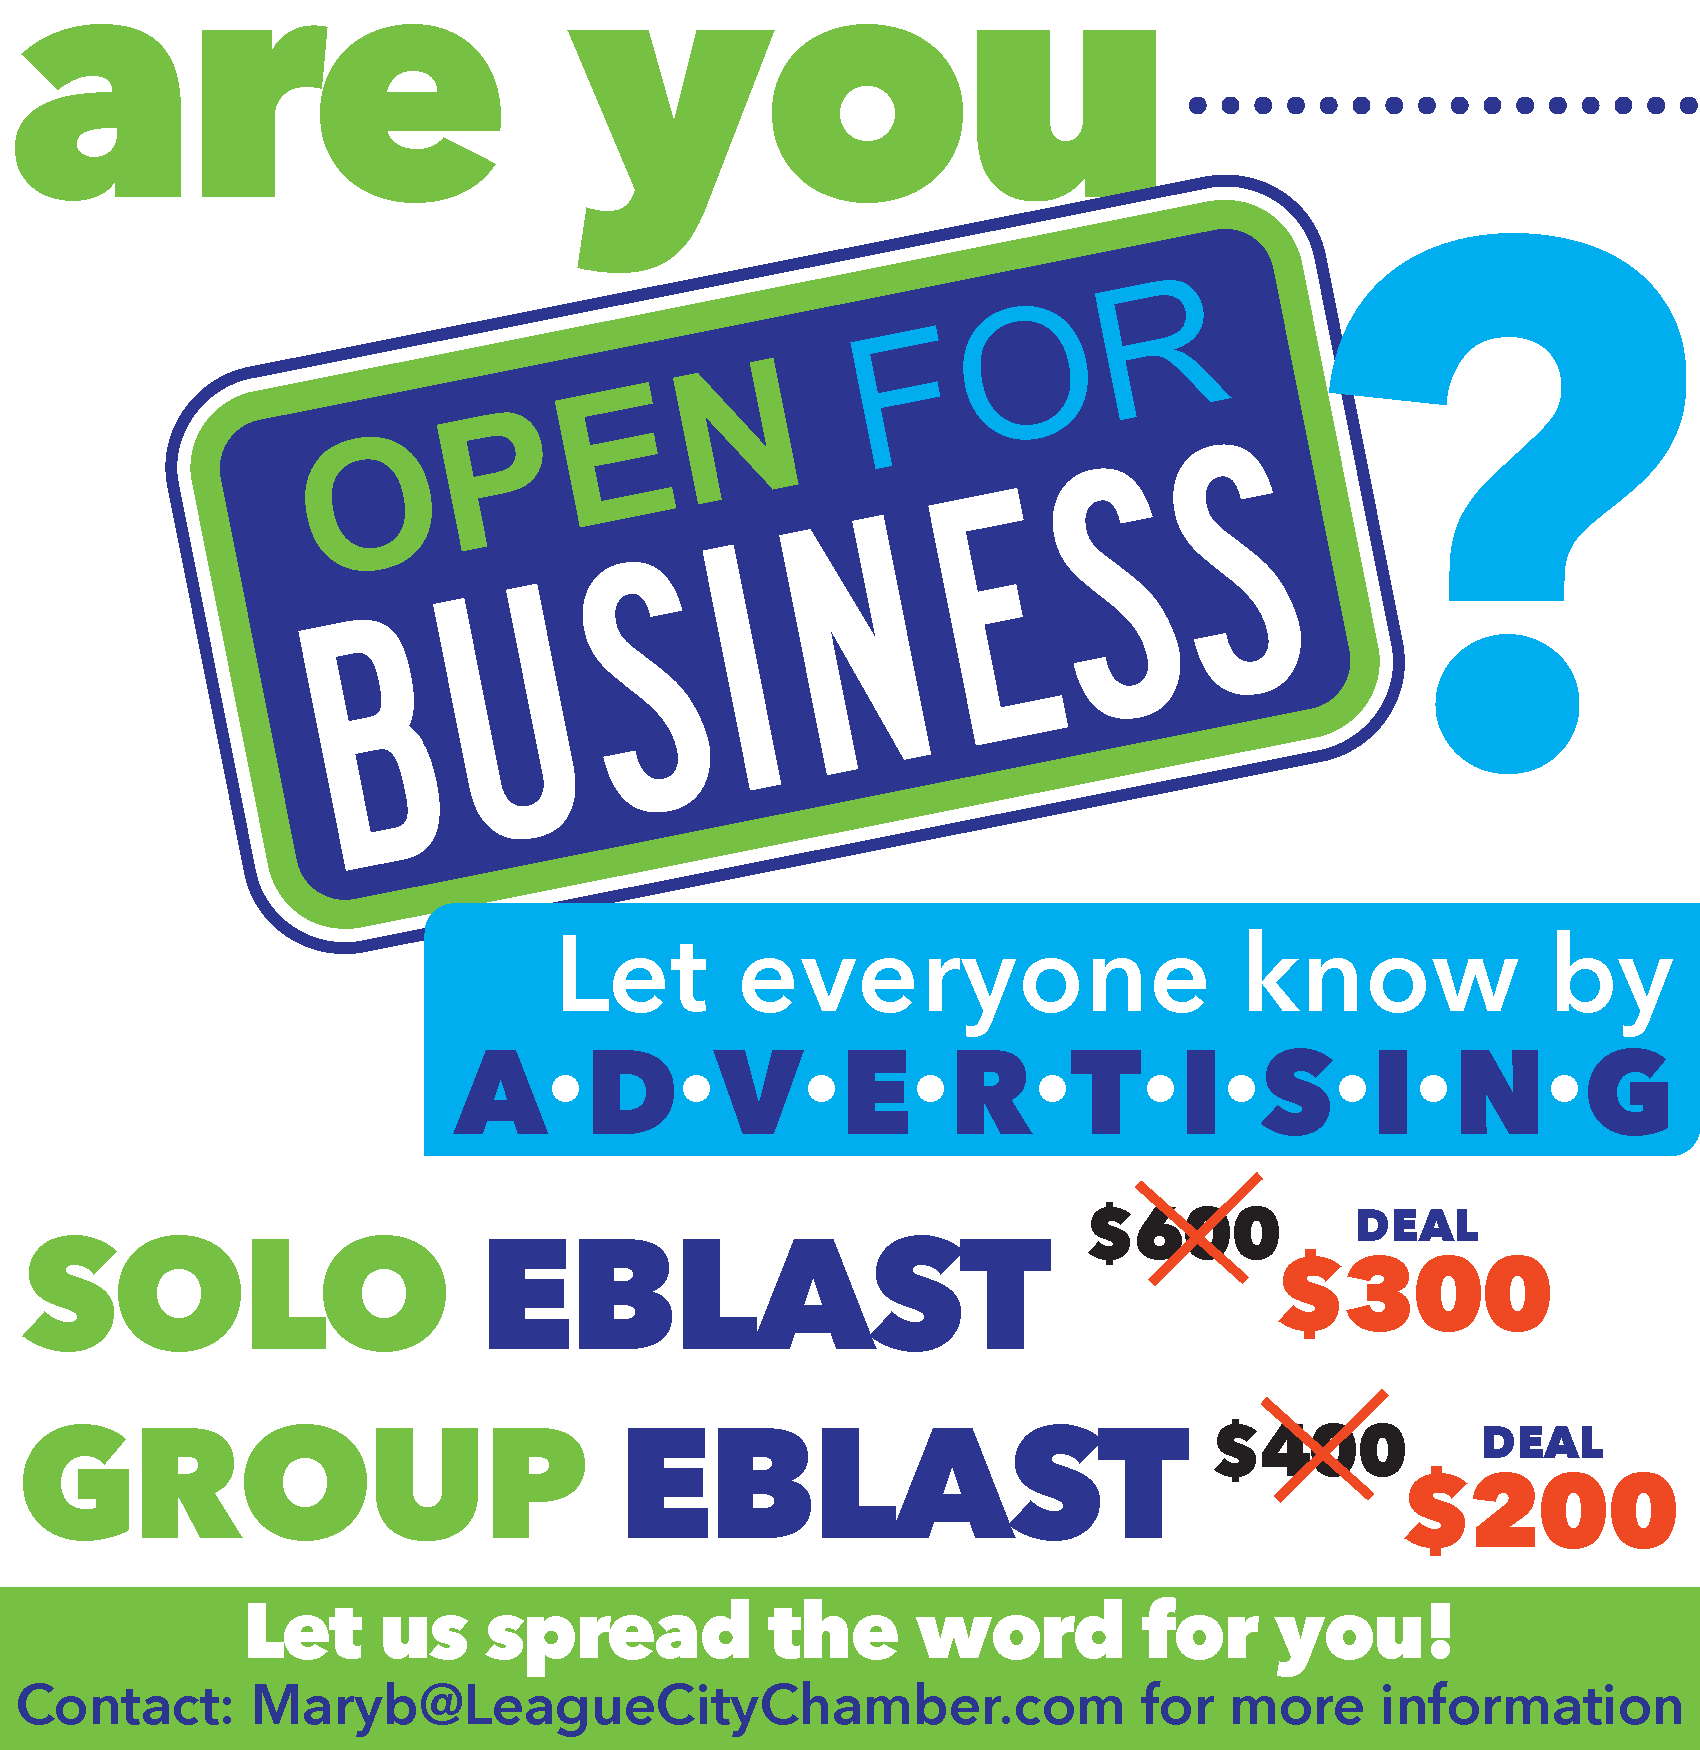 Take advantage of advertising with your chamber before the year ends!